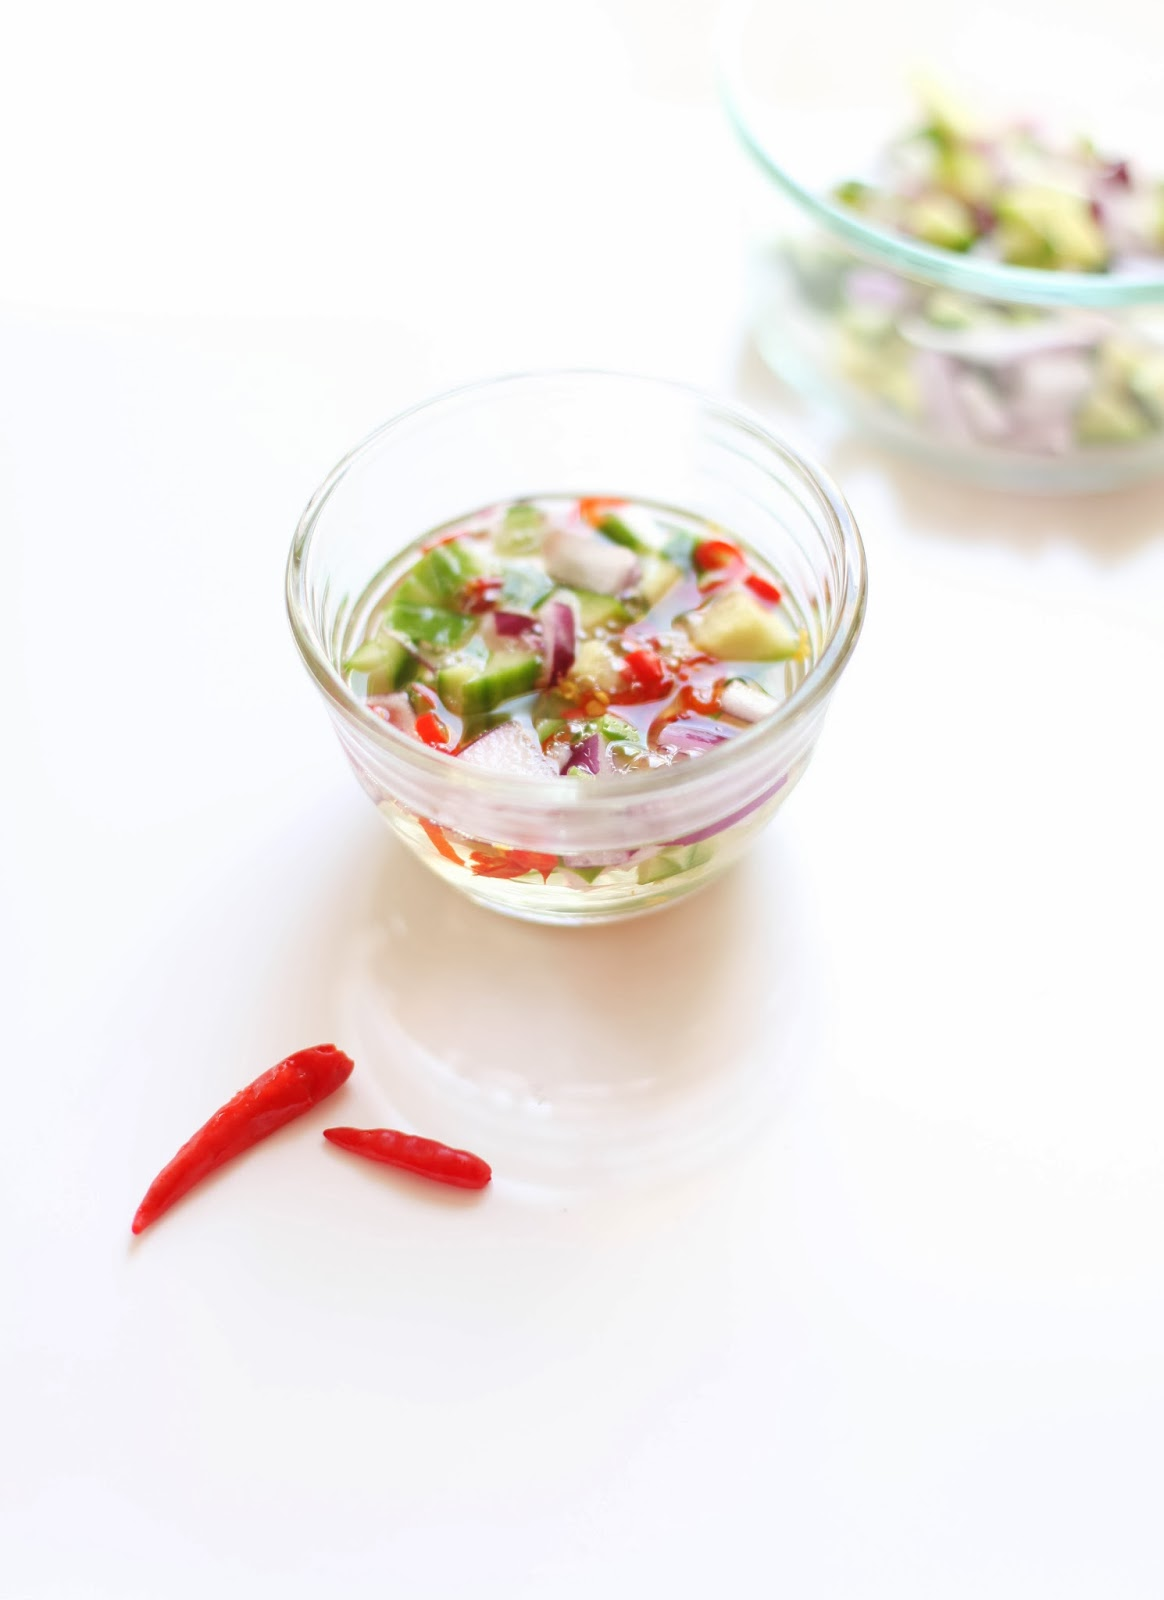 Homemade PIckled Thai Cucumber Relish | via Chandara Creative